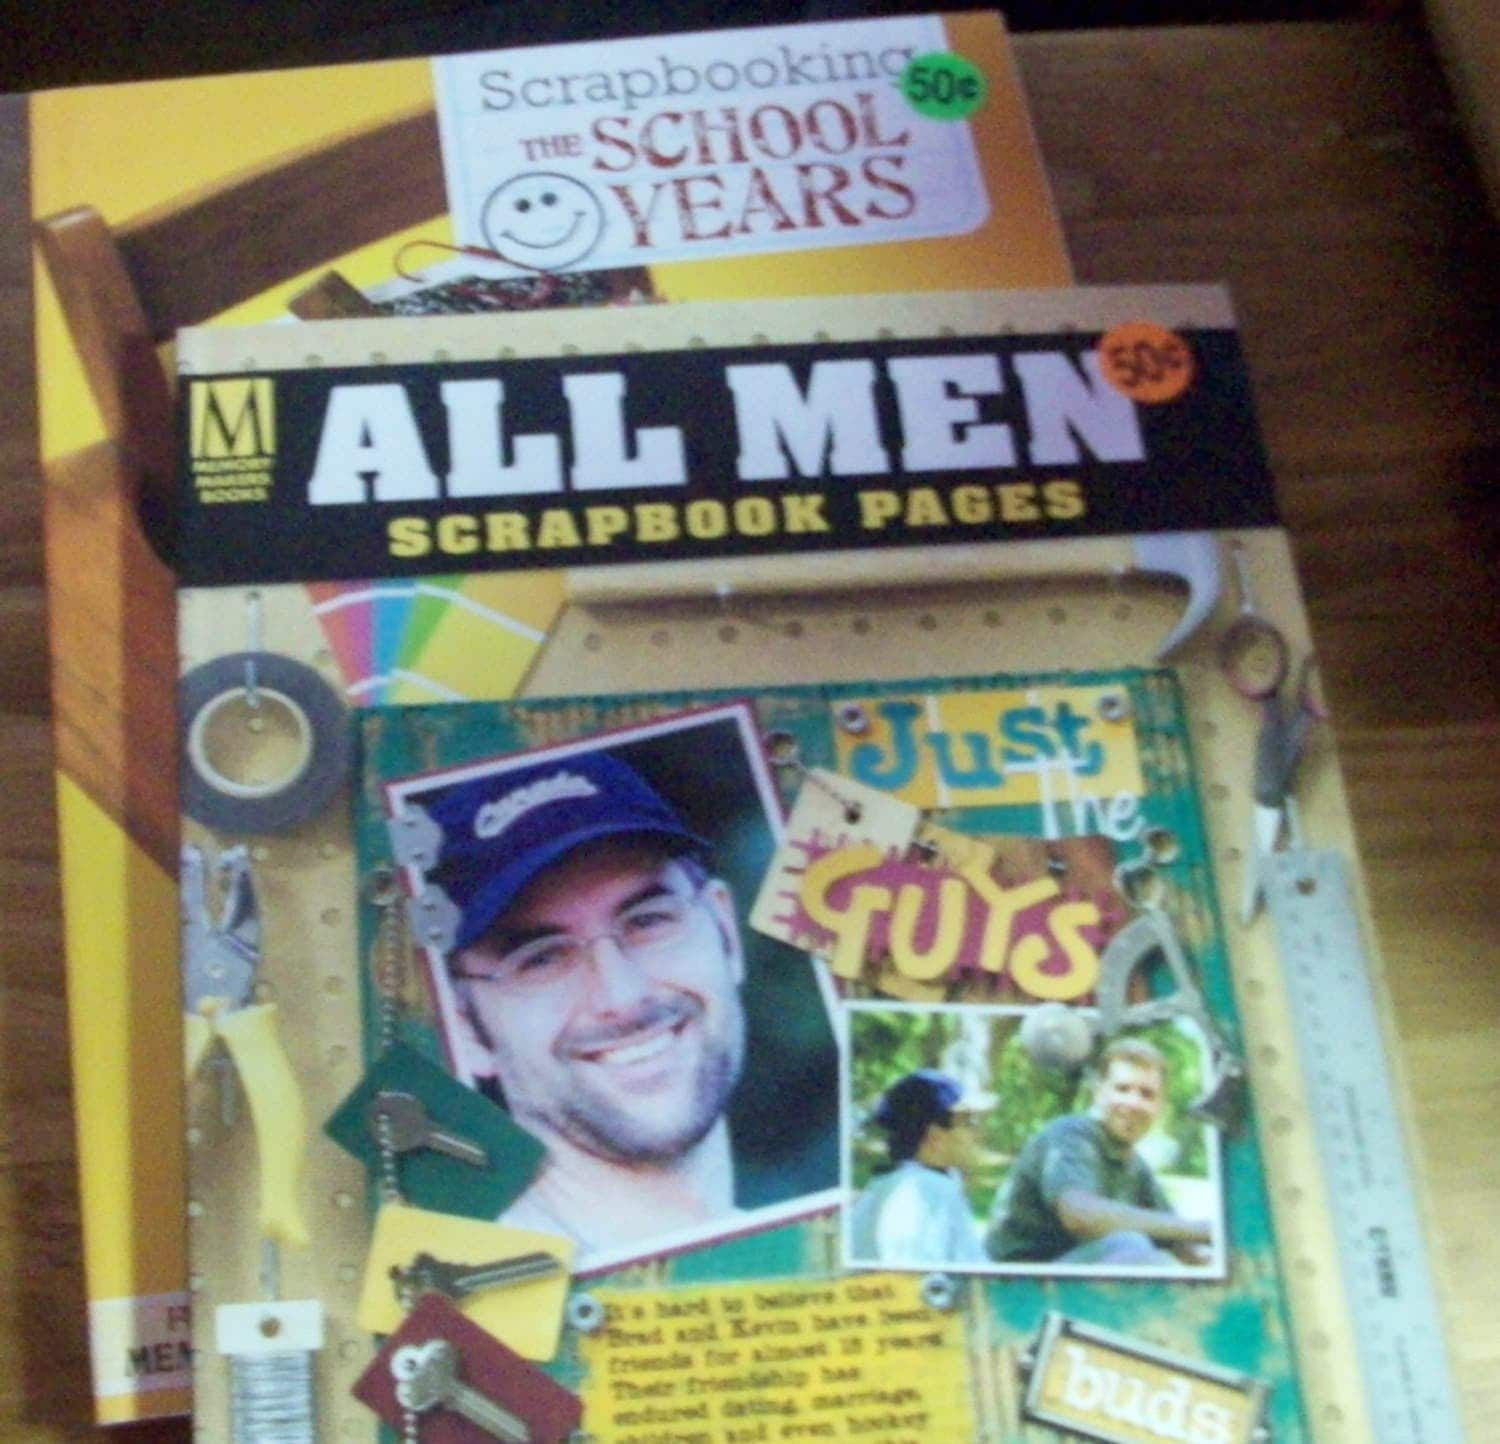 How to scrapbook school years - Memory Makers Books All Men And The School Years Scrapbook Page Ideas